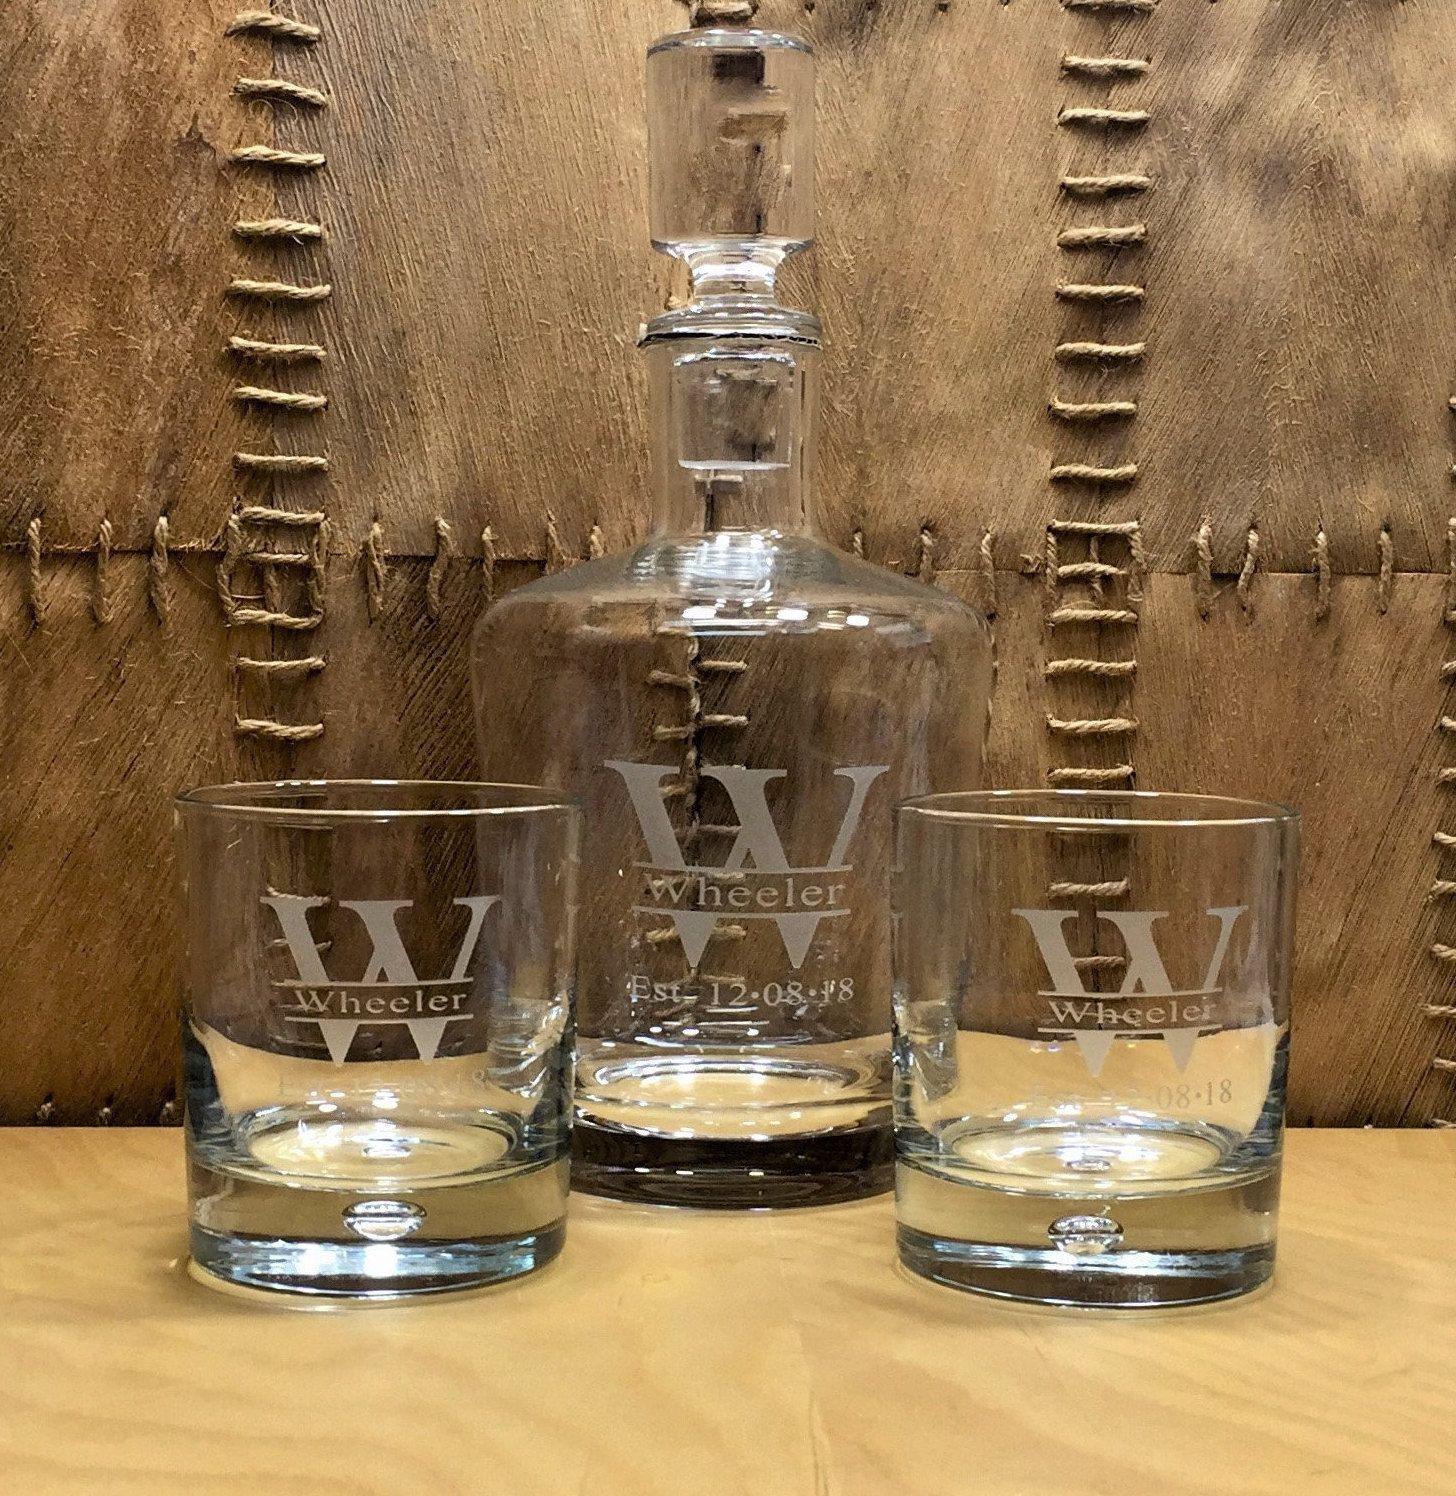 Personalized Whiskey Decanter Set, Hand-Etched Monogram